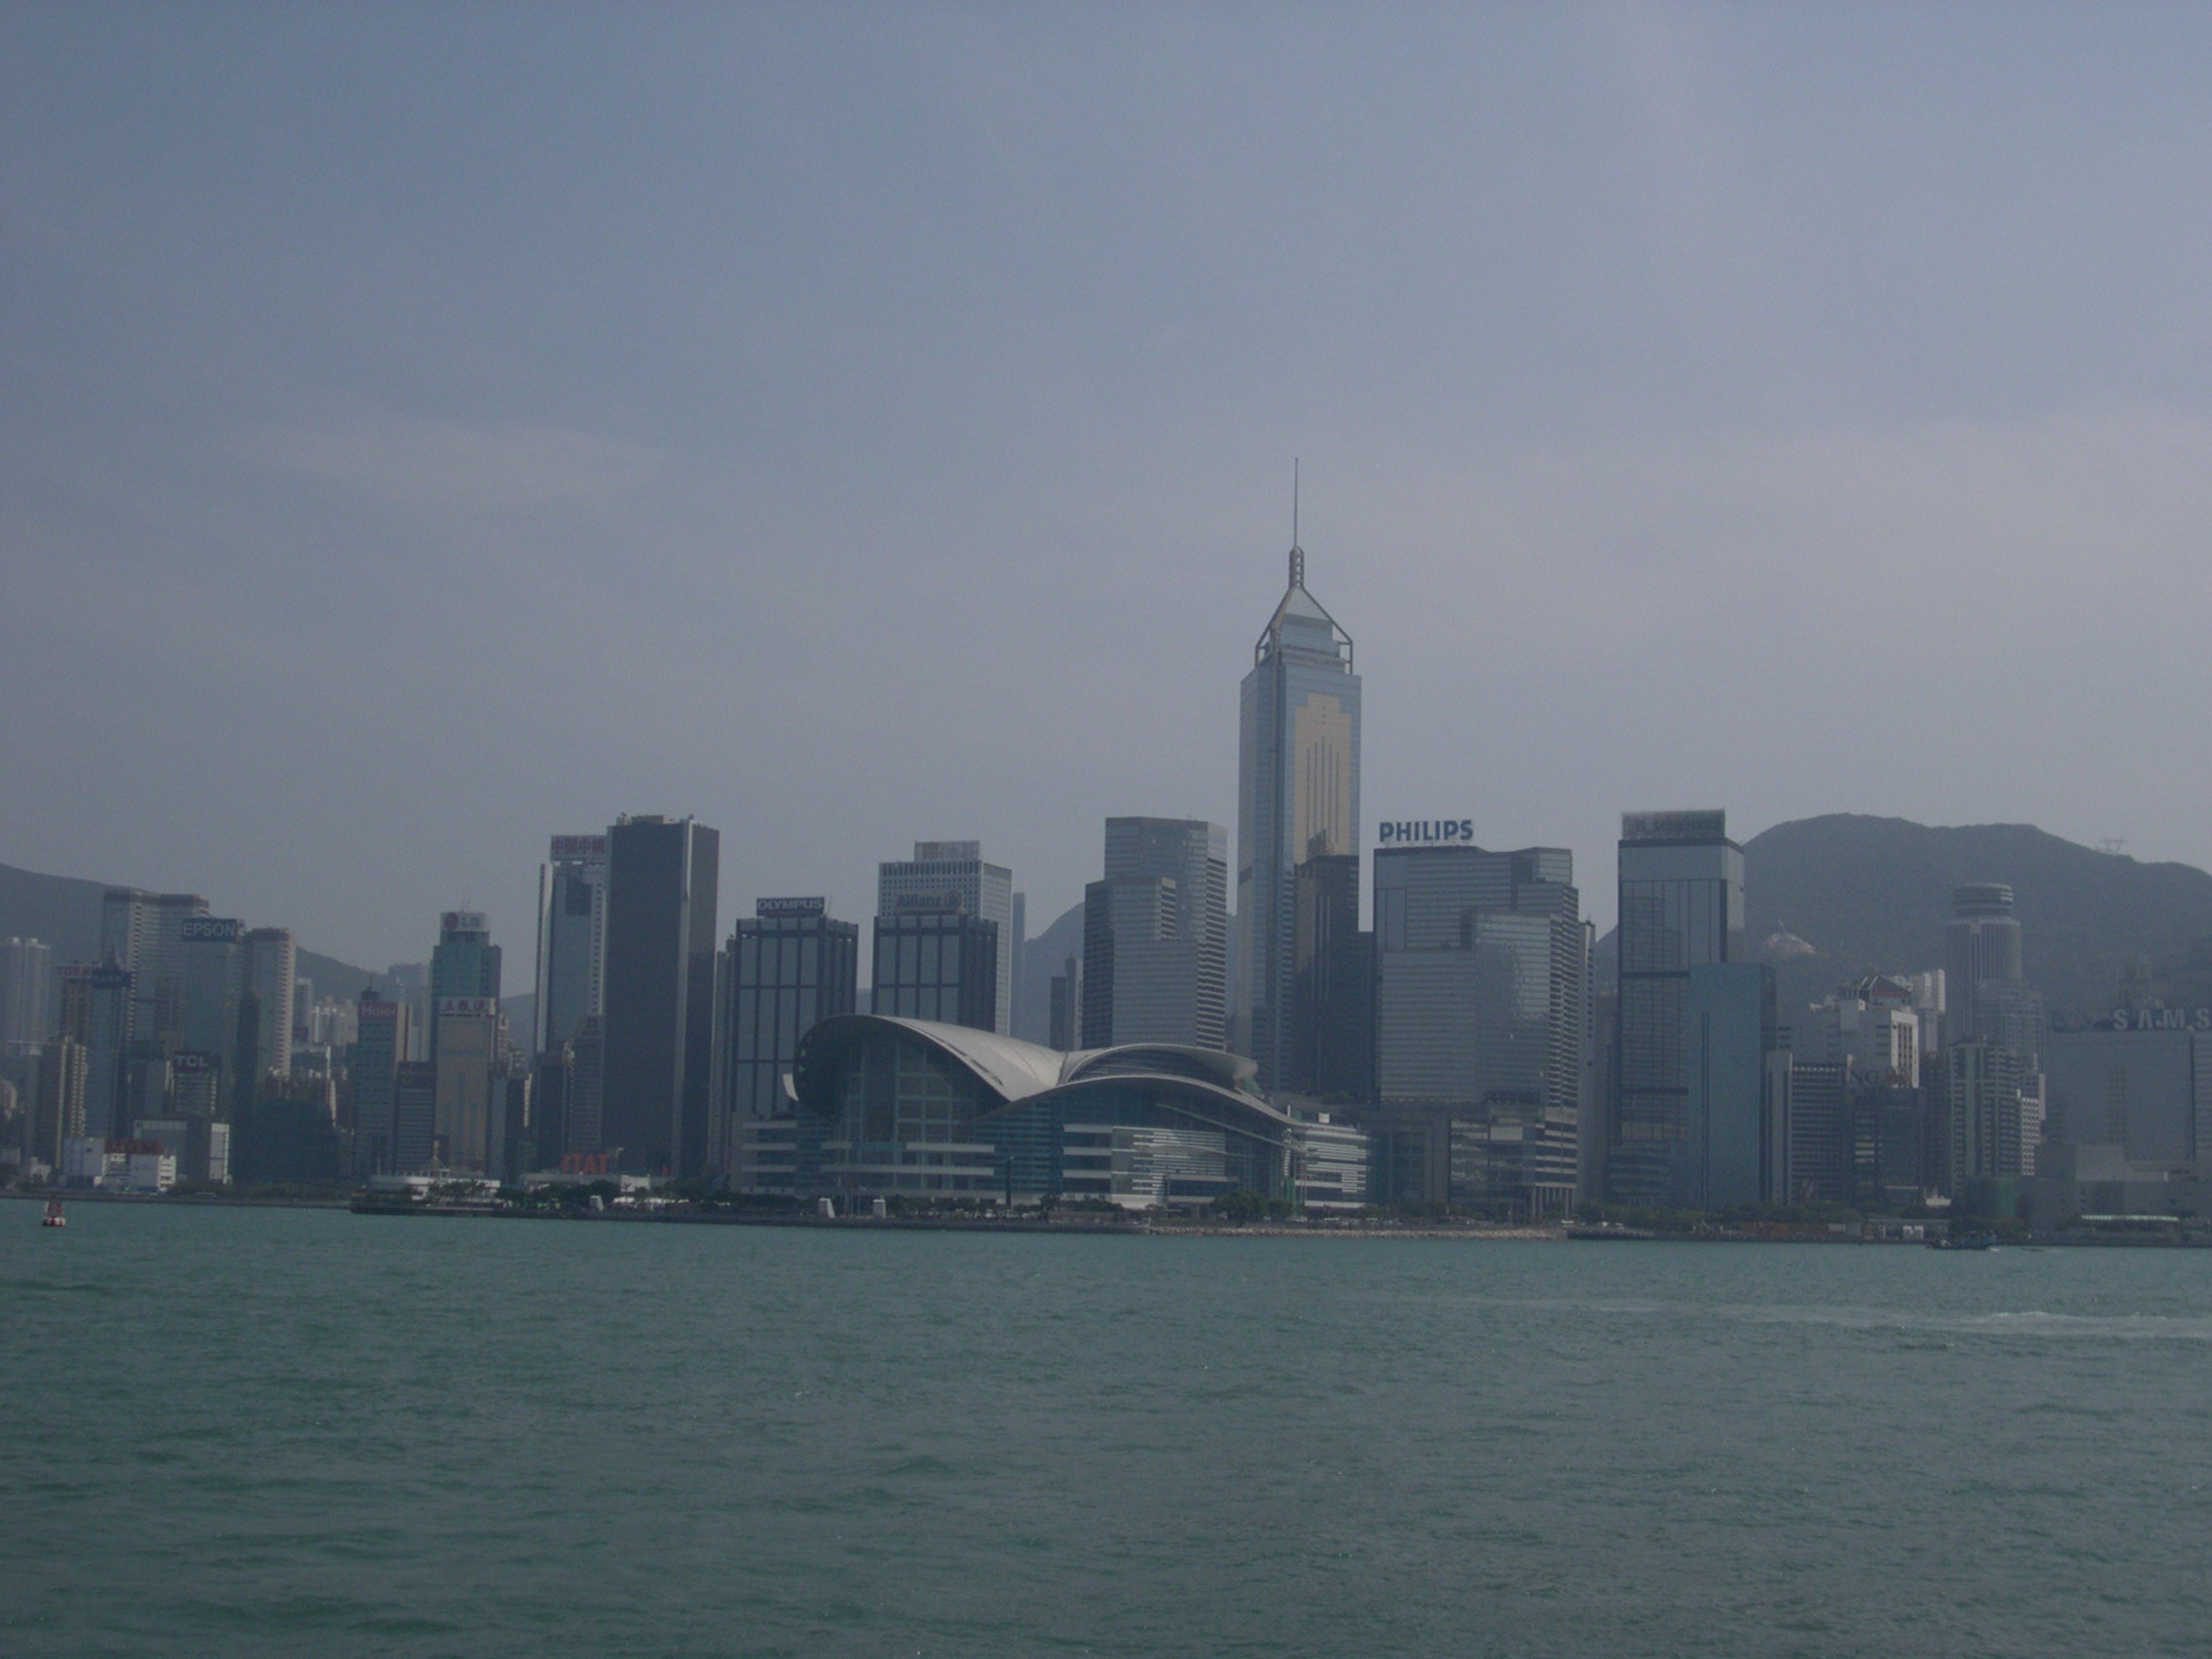 Hong Kong skyline from the water